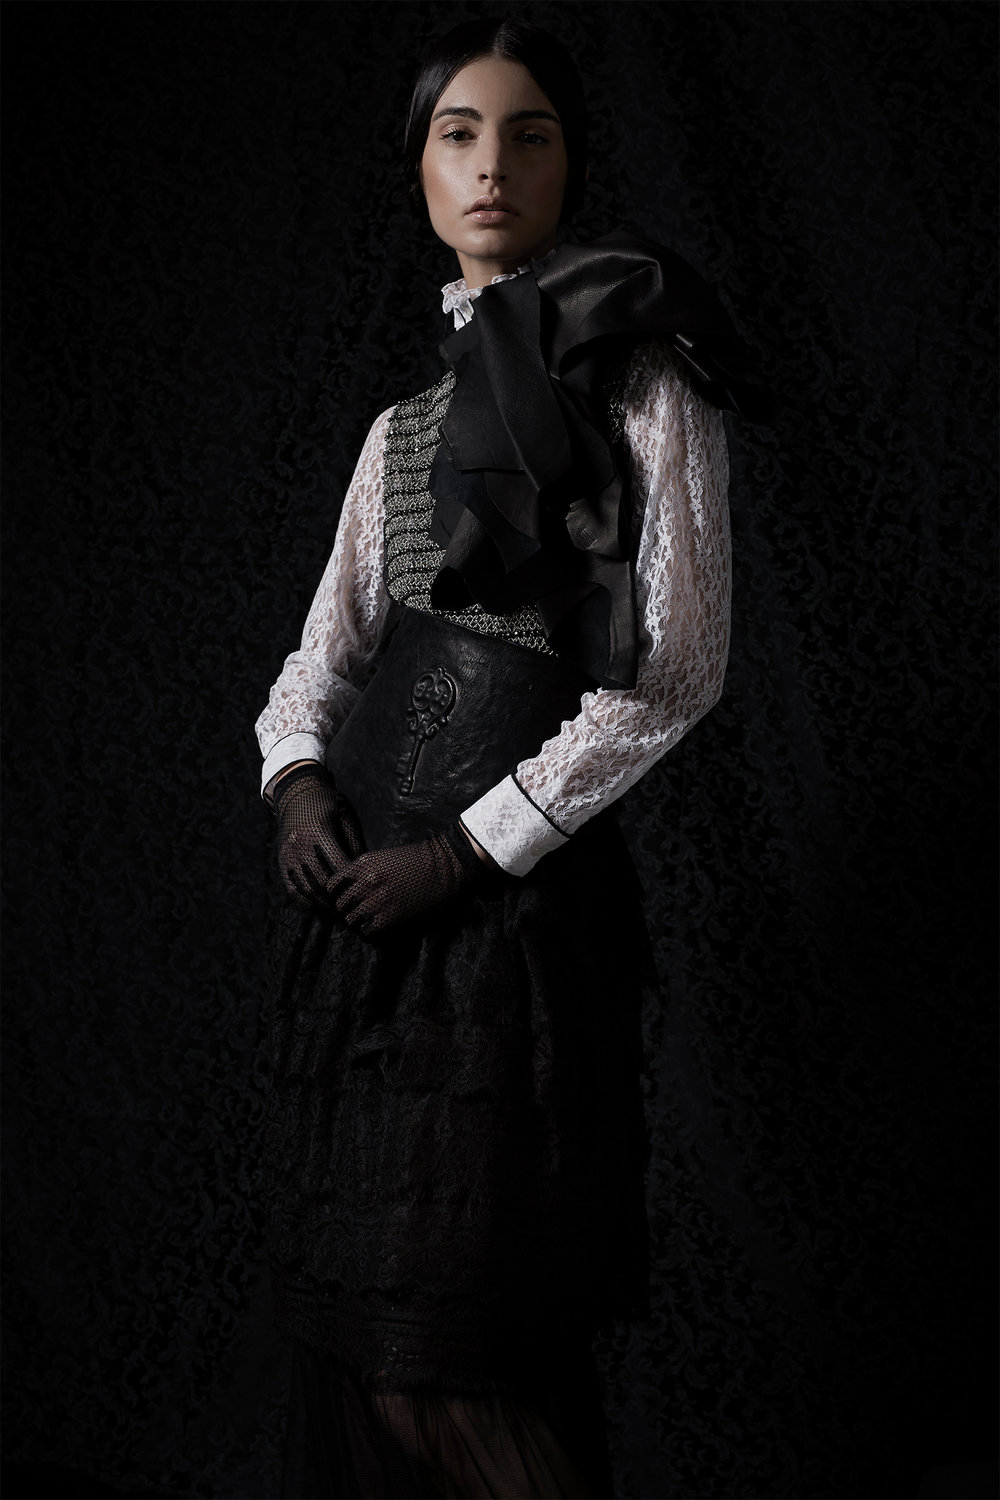 White lace shirt, Numero 21; dress with metallic bodice and black lace skirt, Mori Castello; black underskirt in woven tulle, Mori Castello; black leather necklace with fringe and leather belt with key detail, Zora Romanska